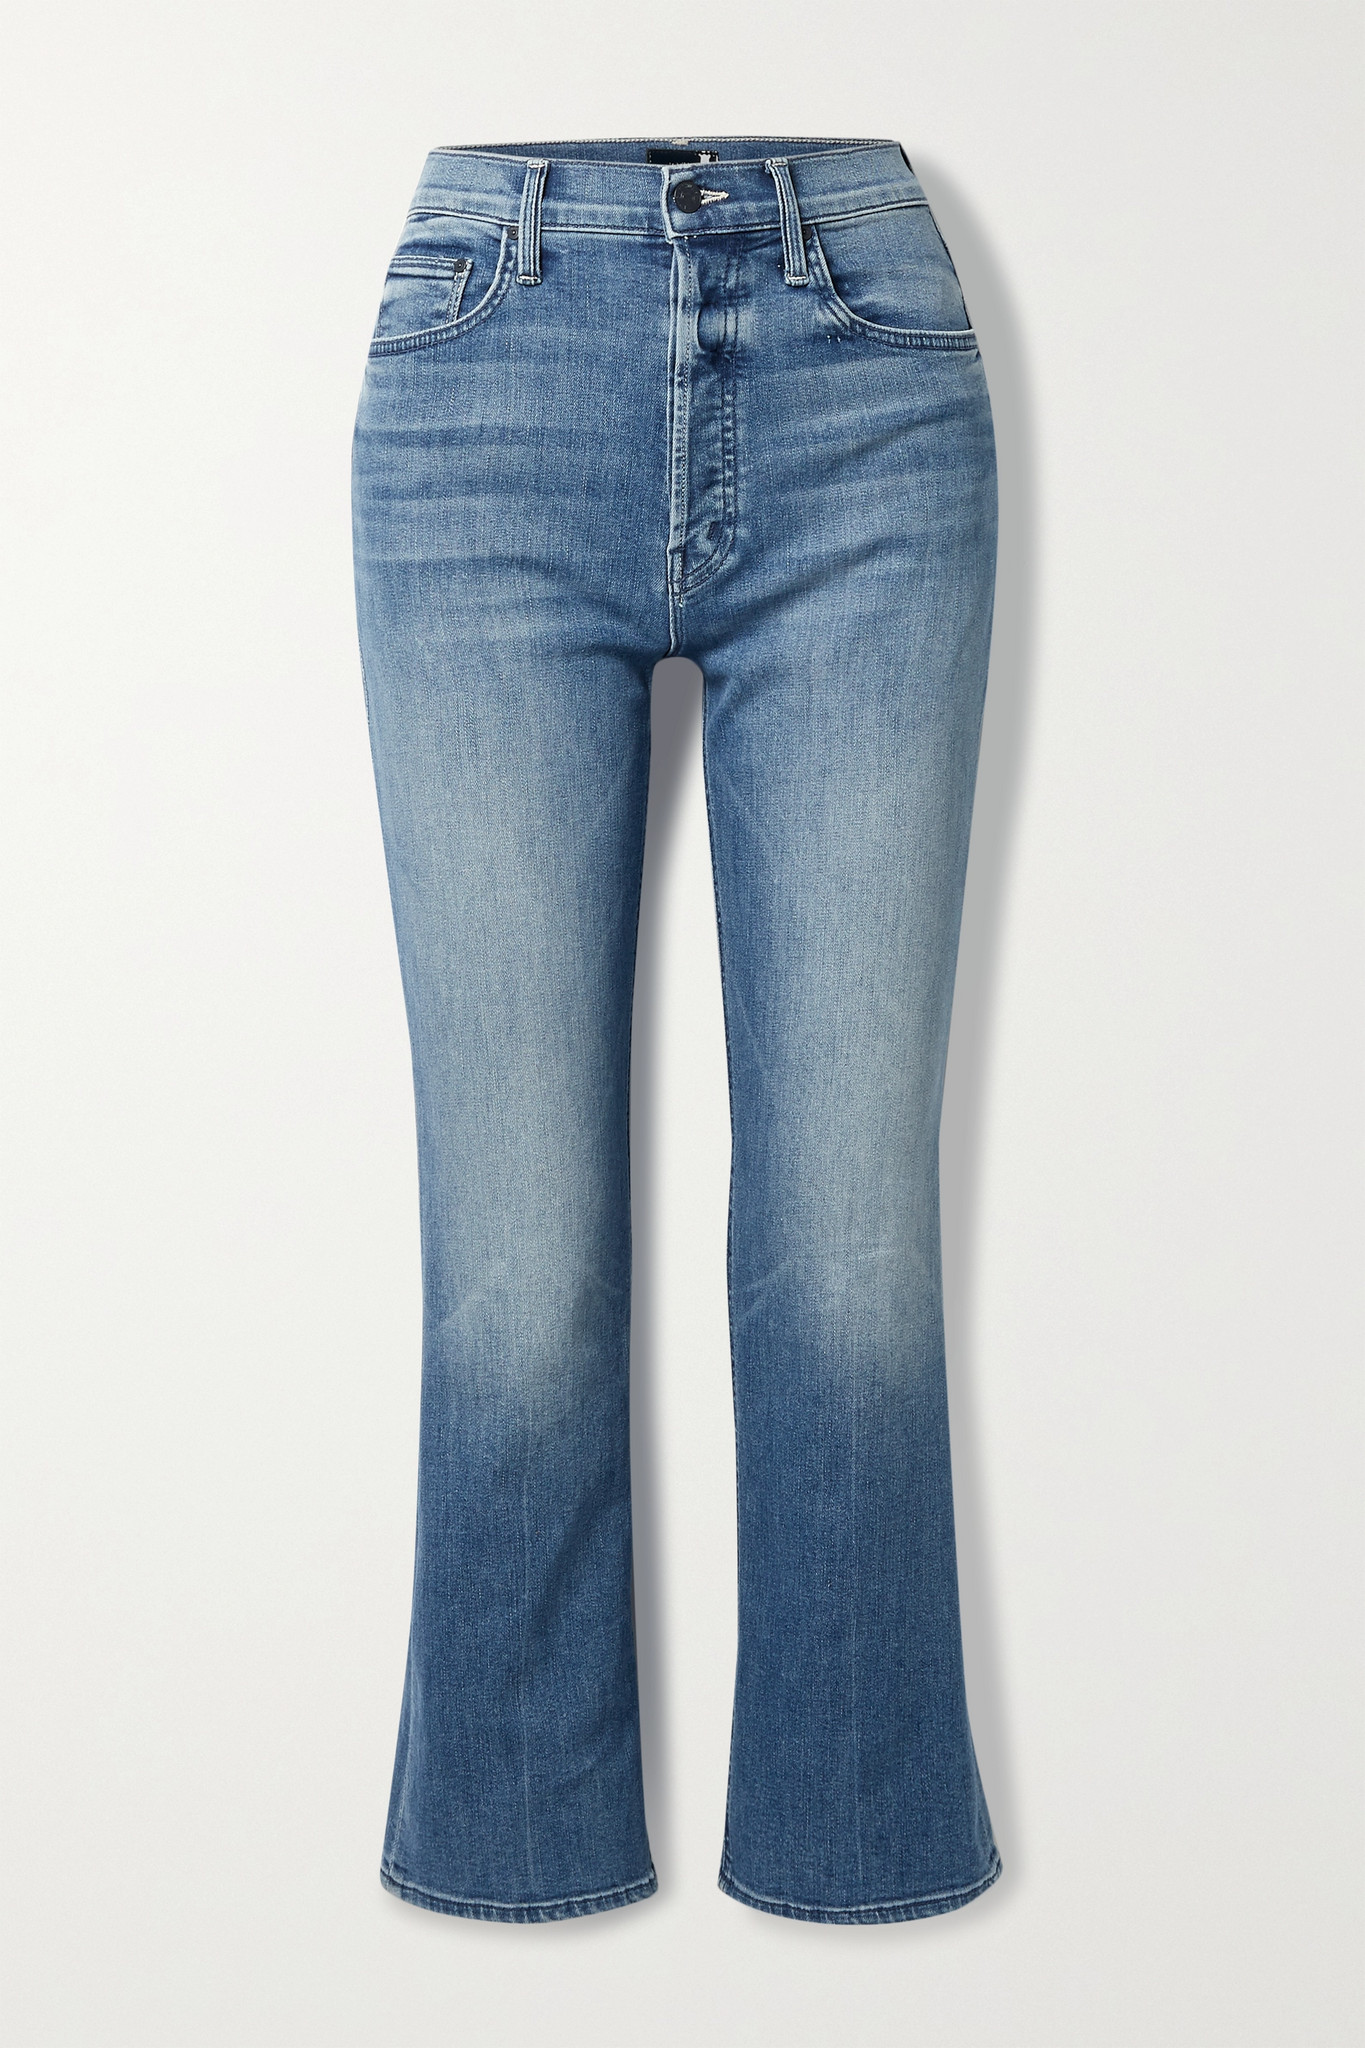 MOTHER - The Tripper High-rise Straight-leg Jeans - Blue - 25